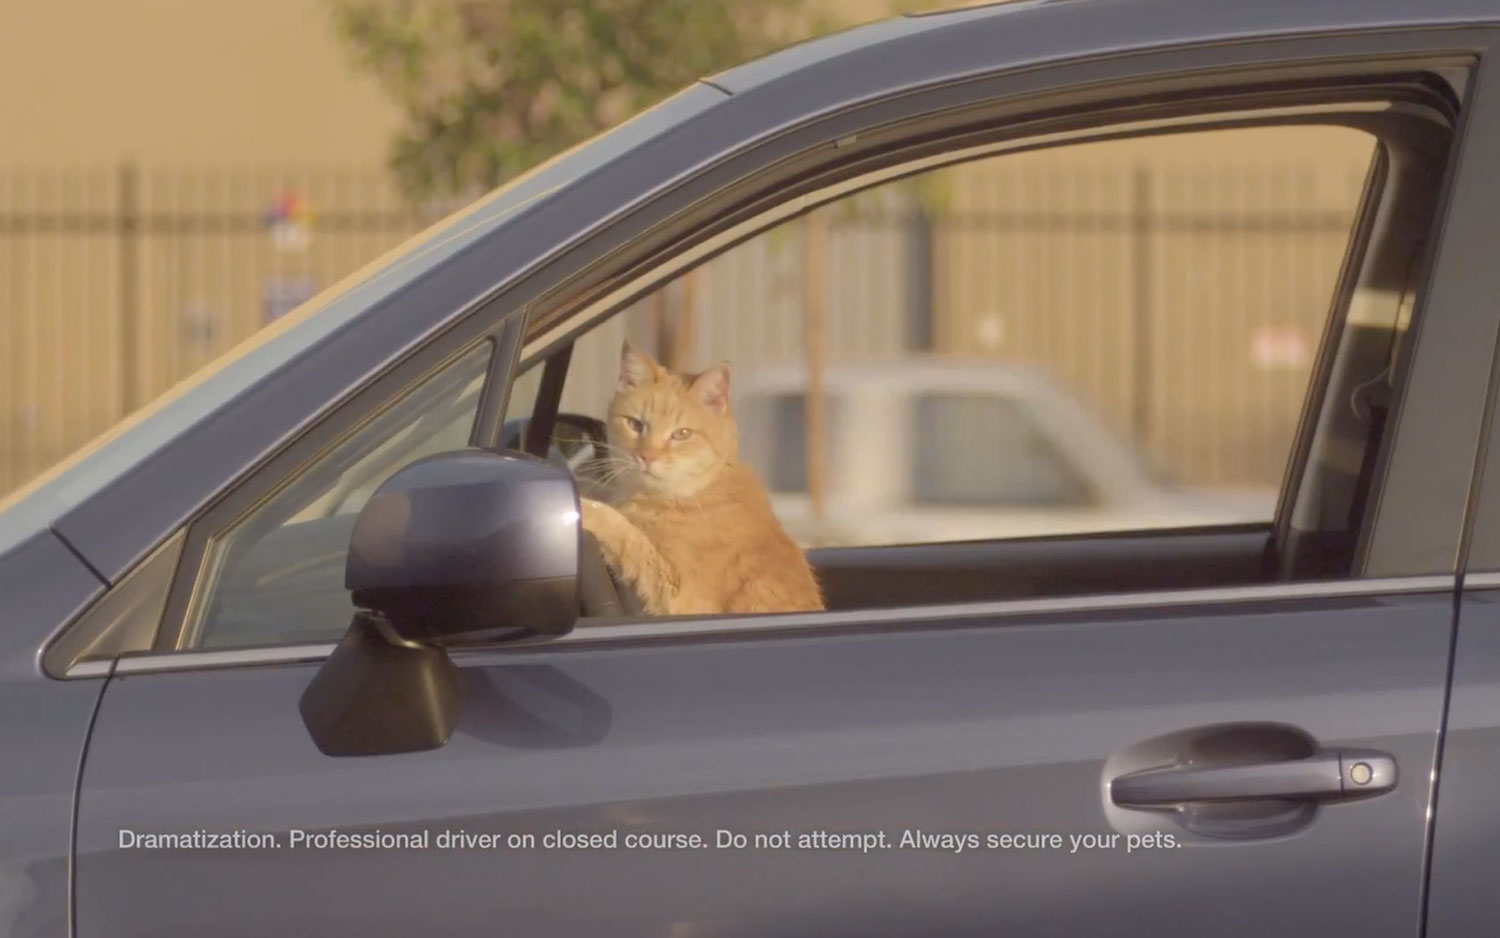 2014 Subaru Forester Cat Driving Car